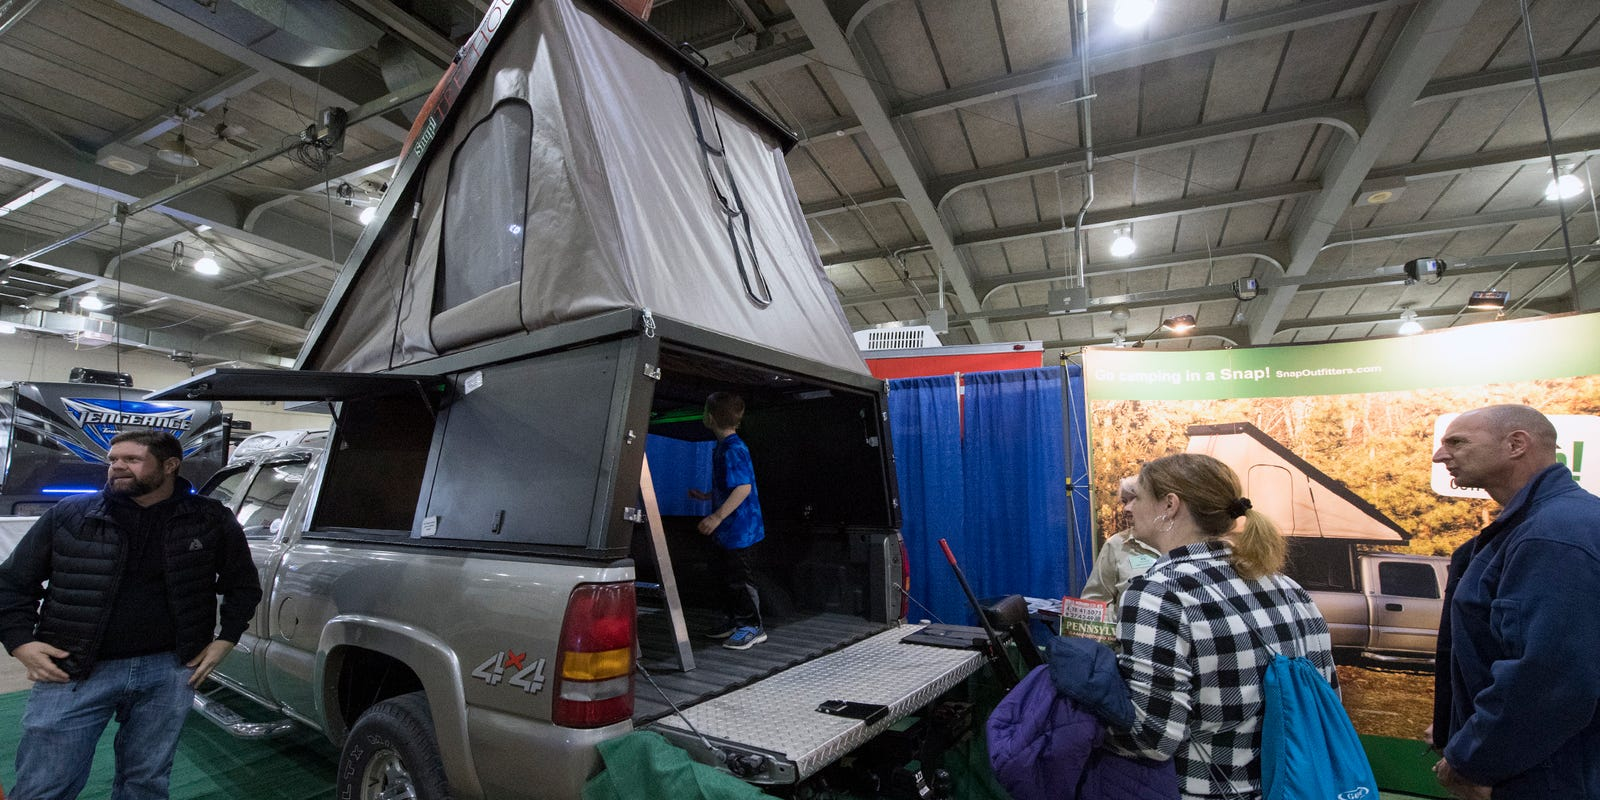 New pickup truck camper called Snap! Treehouse is made in